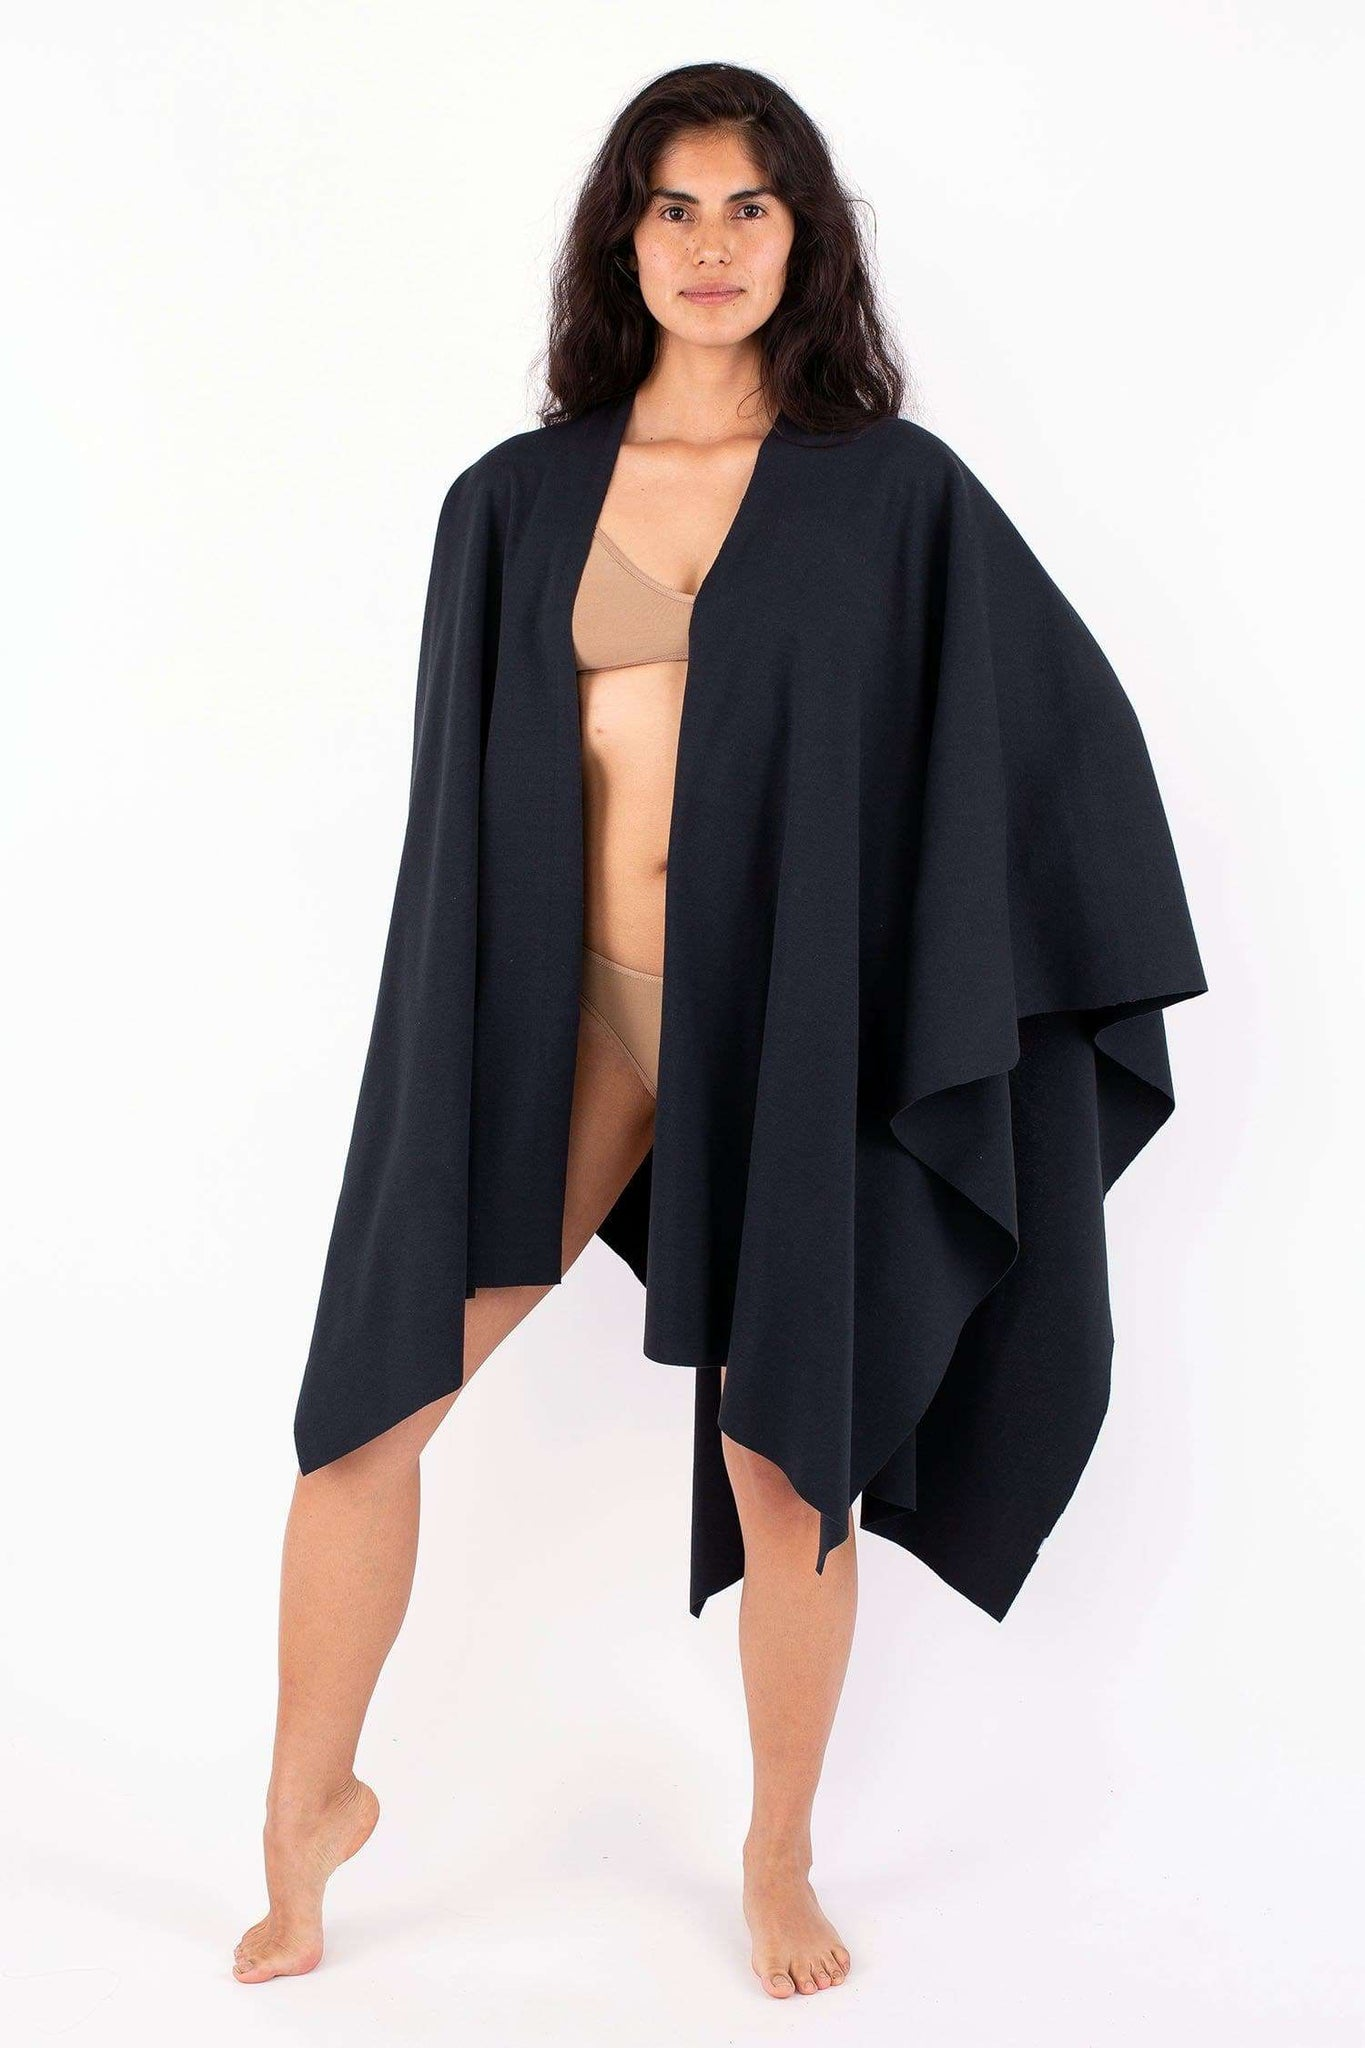 RHFR399GD - Heavy Cotton Rib Poncho